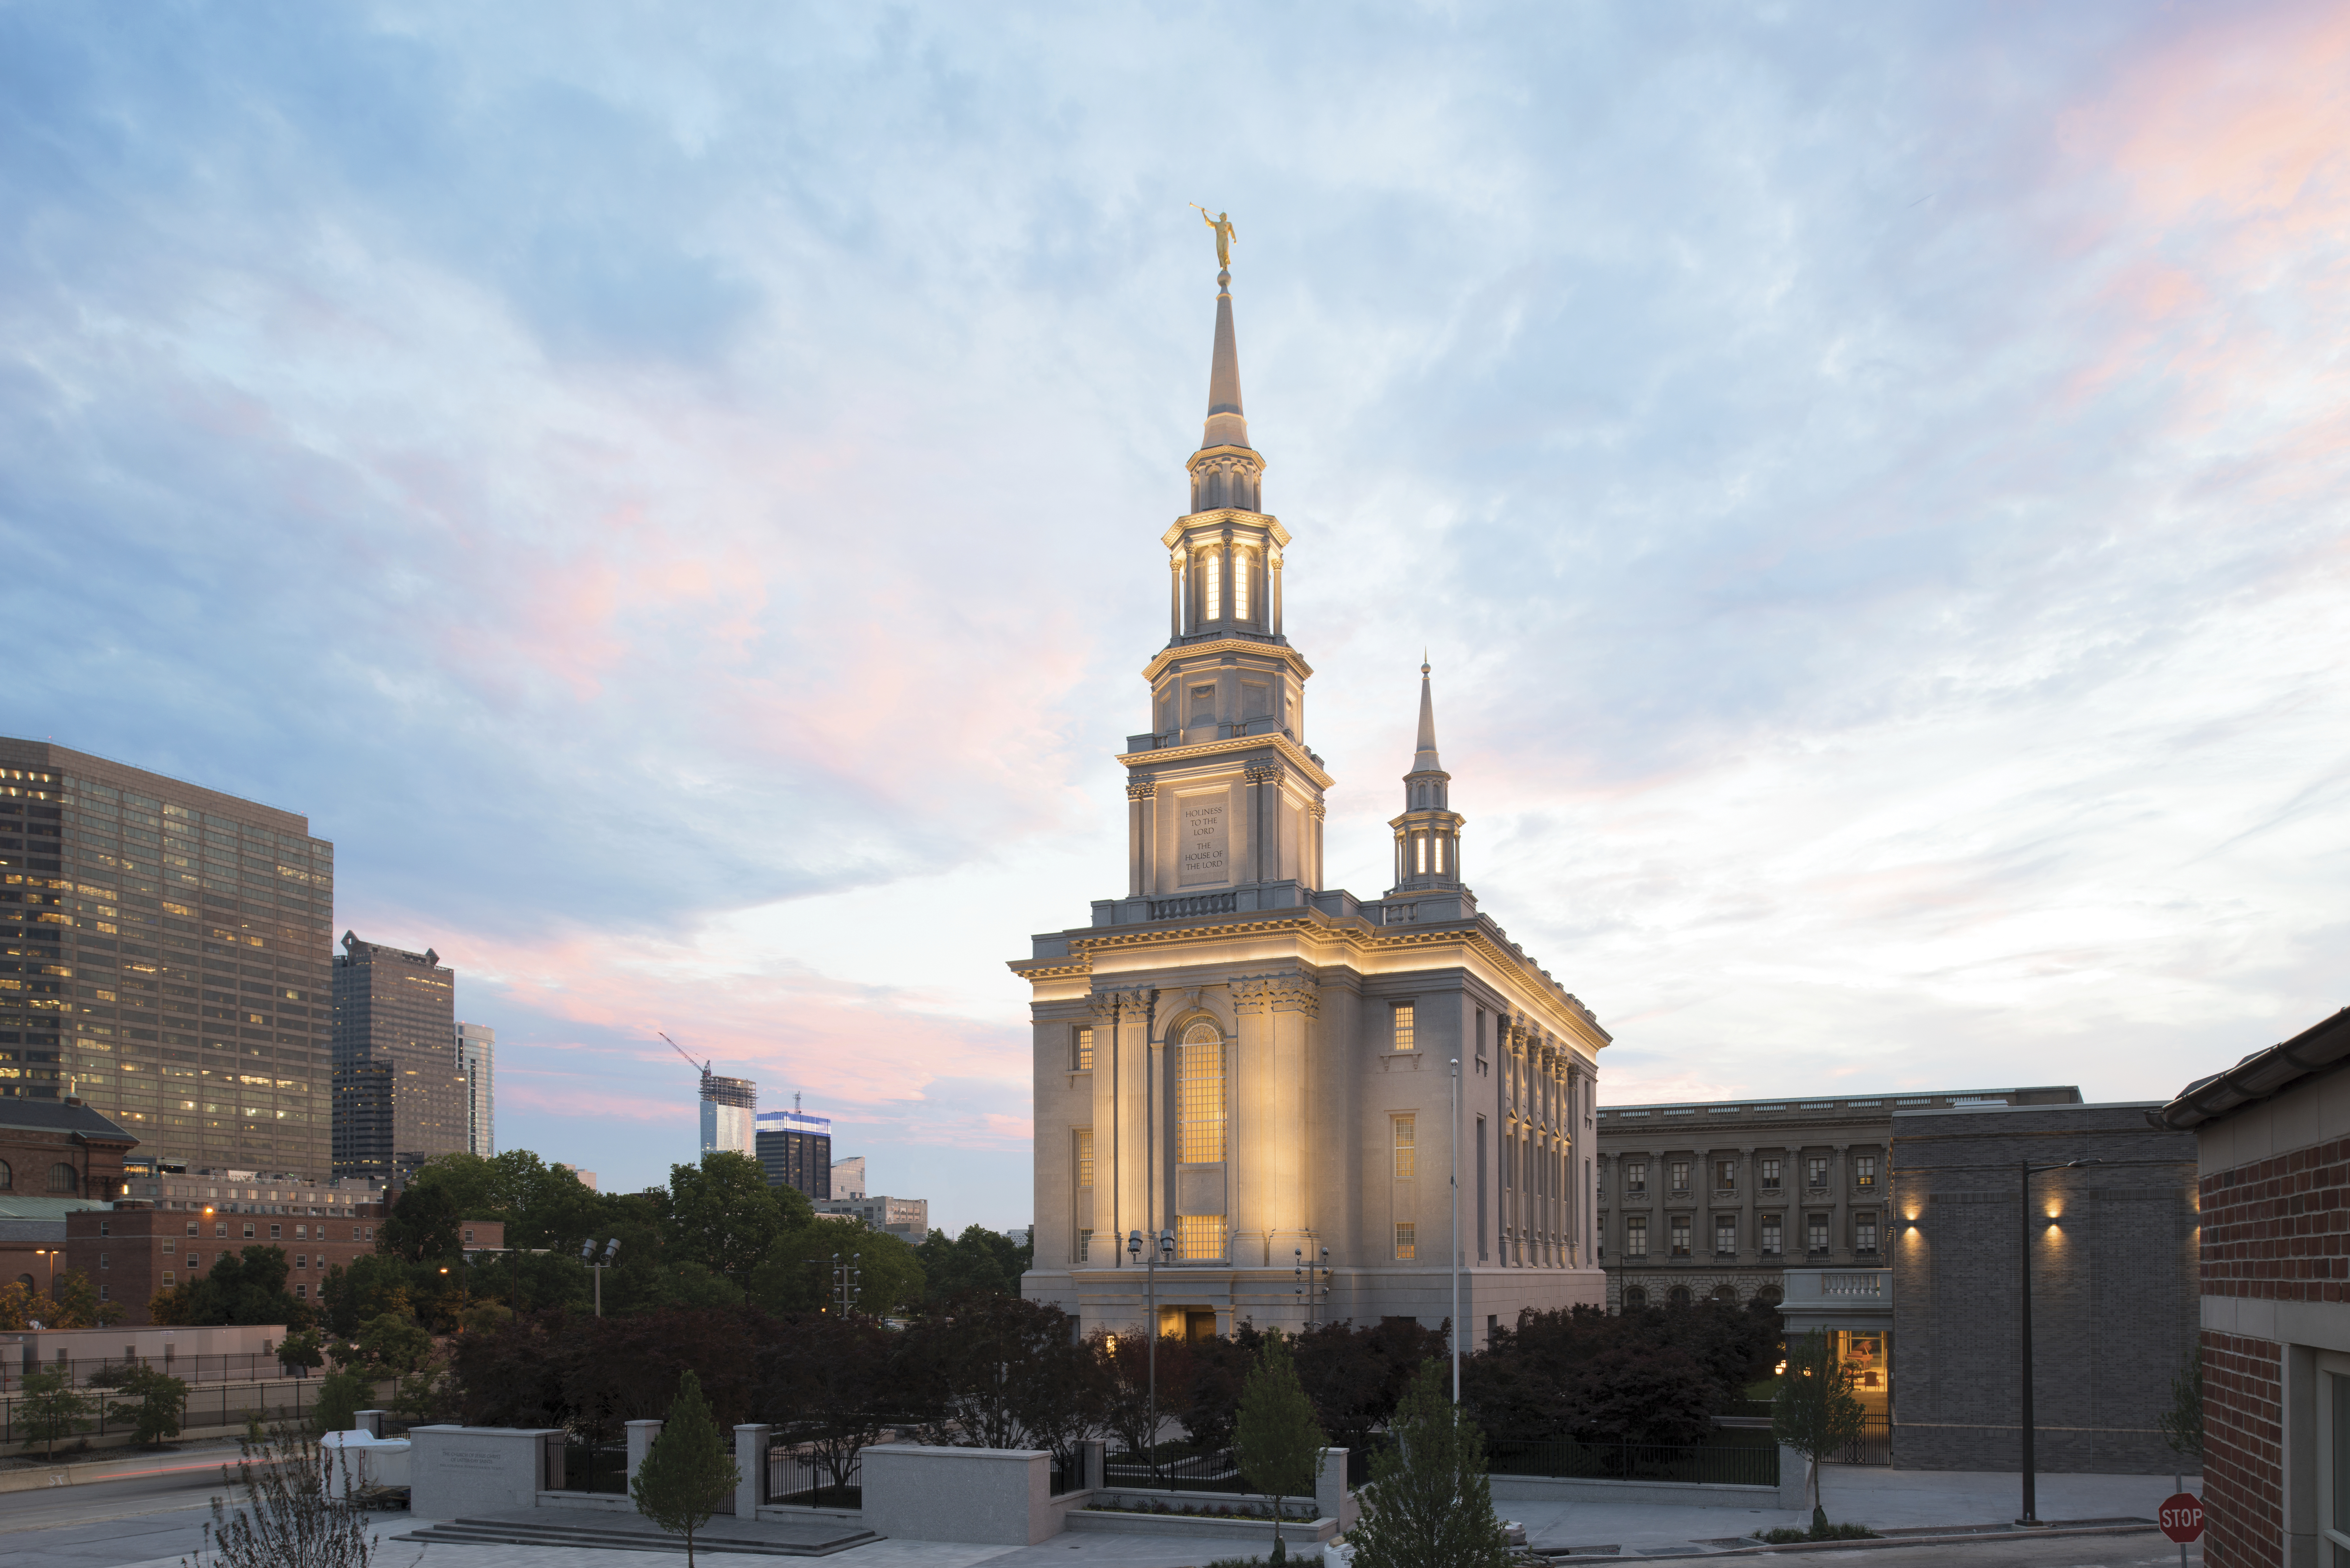 An exterior view of the Philadelphia Pennsylvania Temple with its lights on during a sunset.